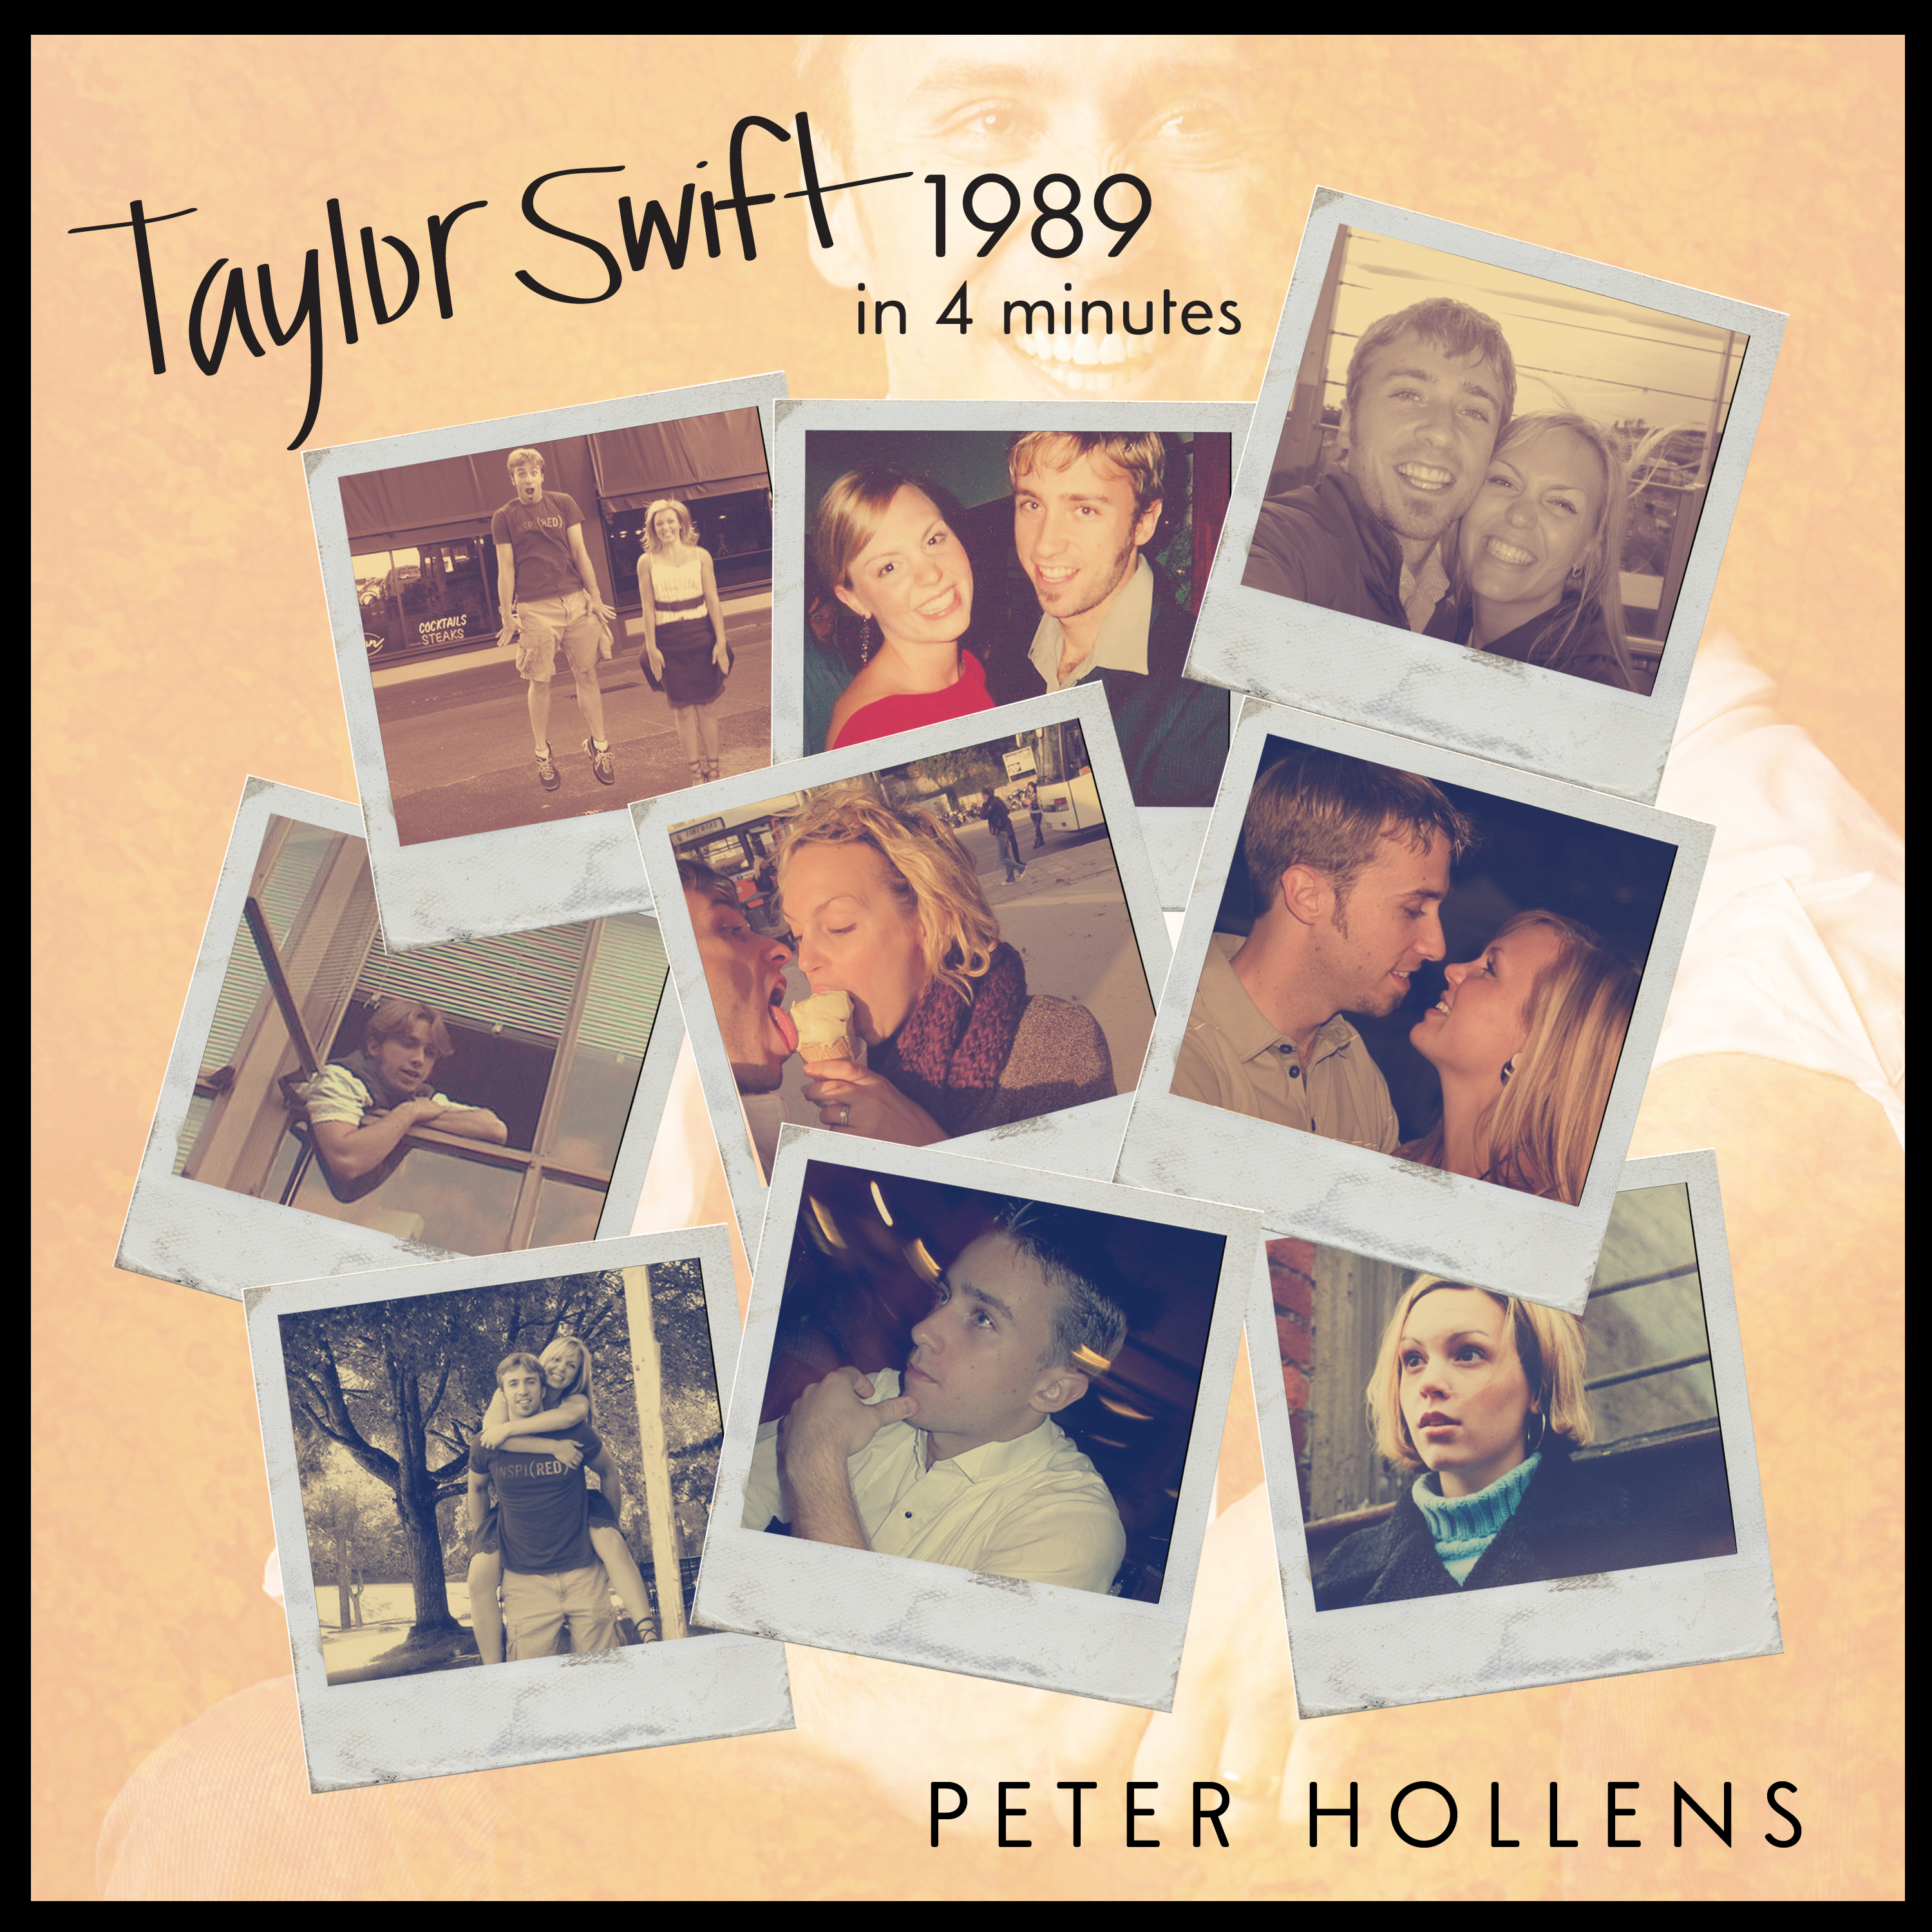 Peter Hollens Shares His Love Story Using Taylor Swift's '1989'